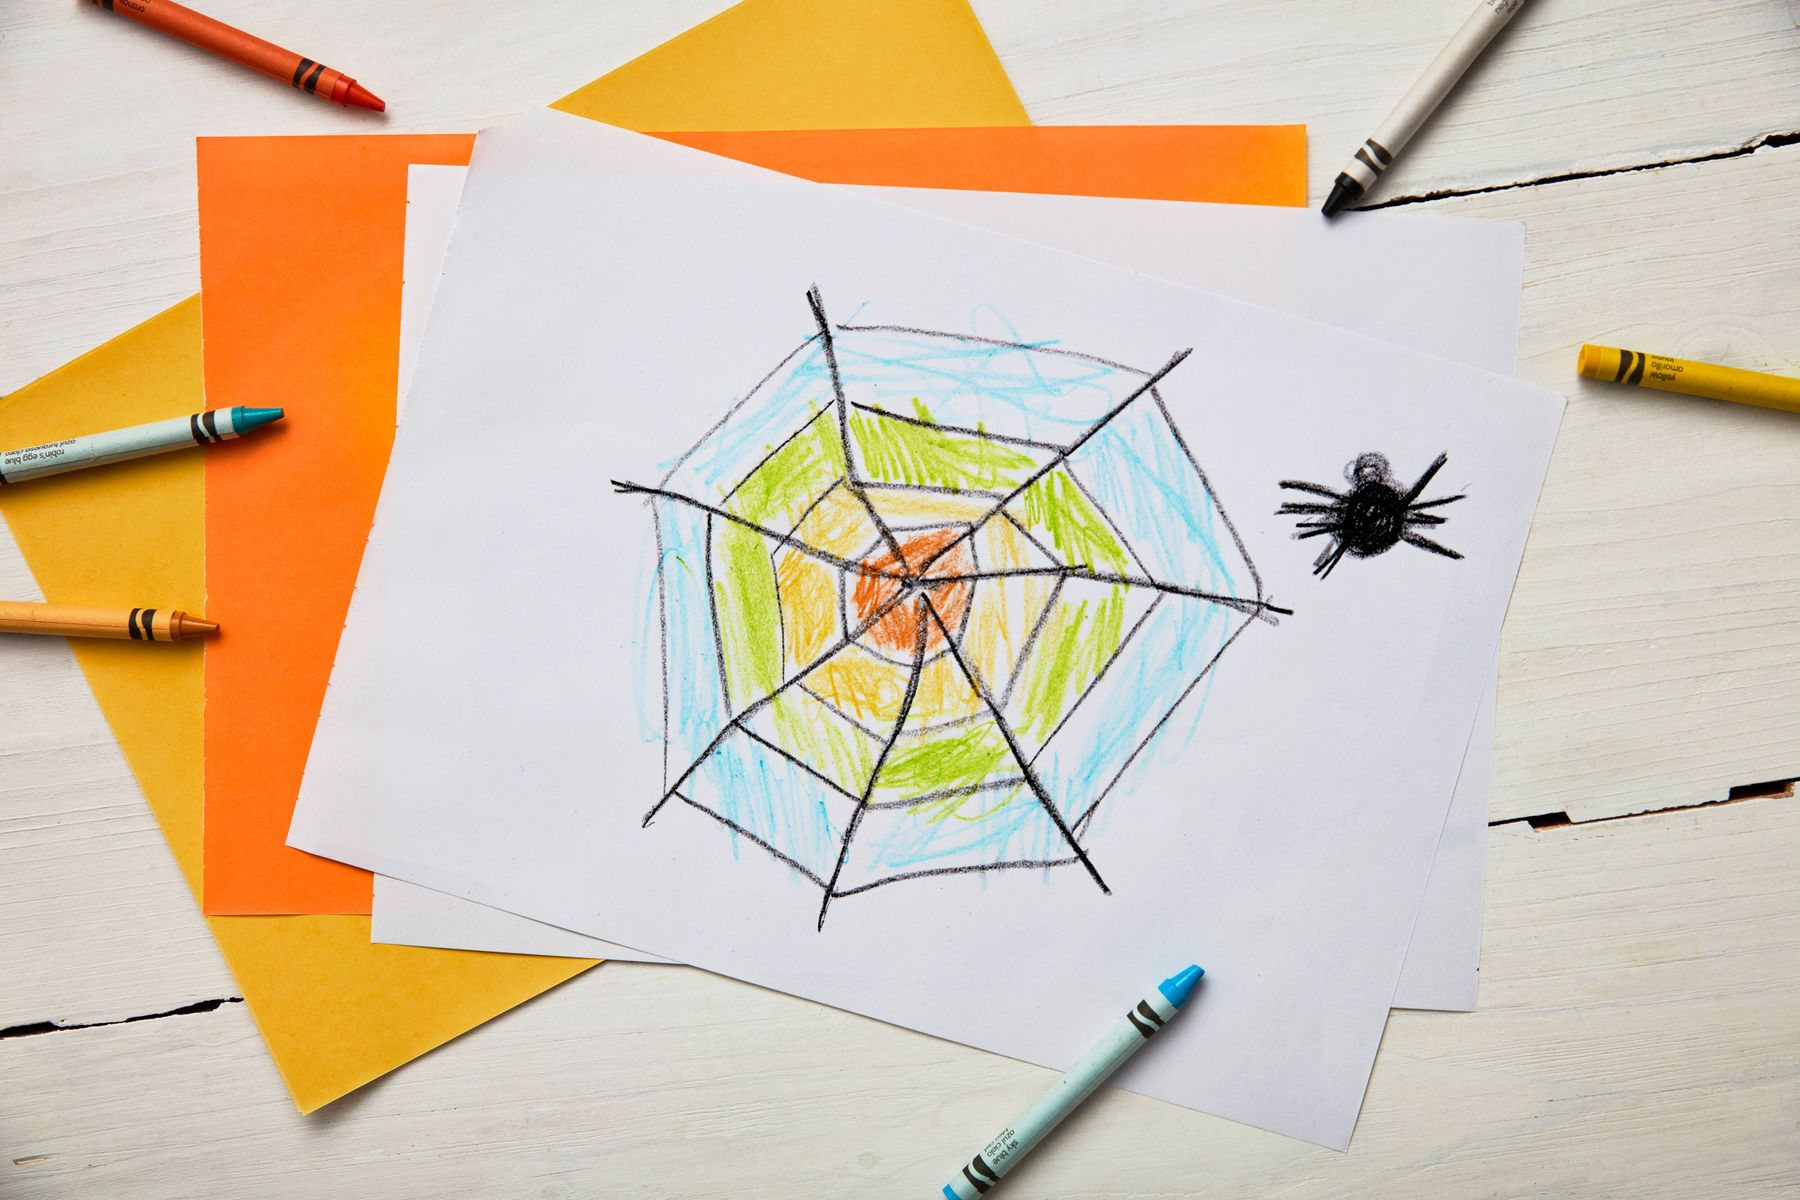 drawing of a spider and a cobweb